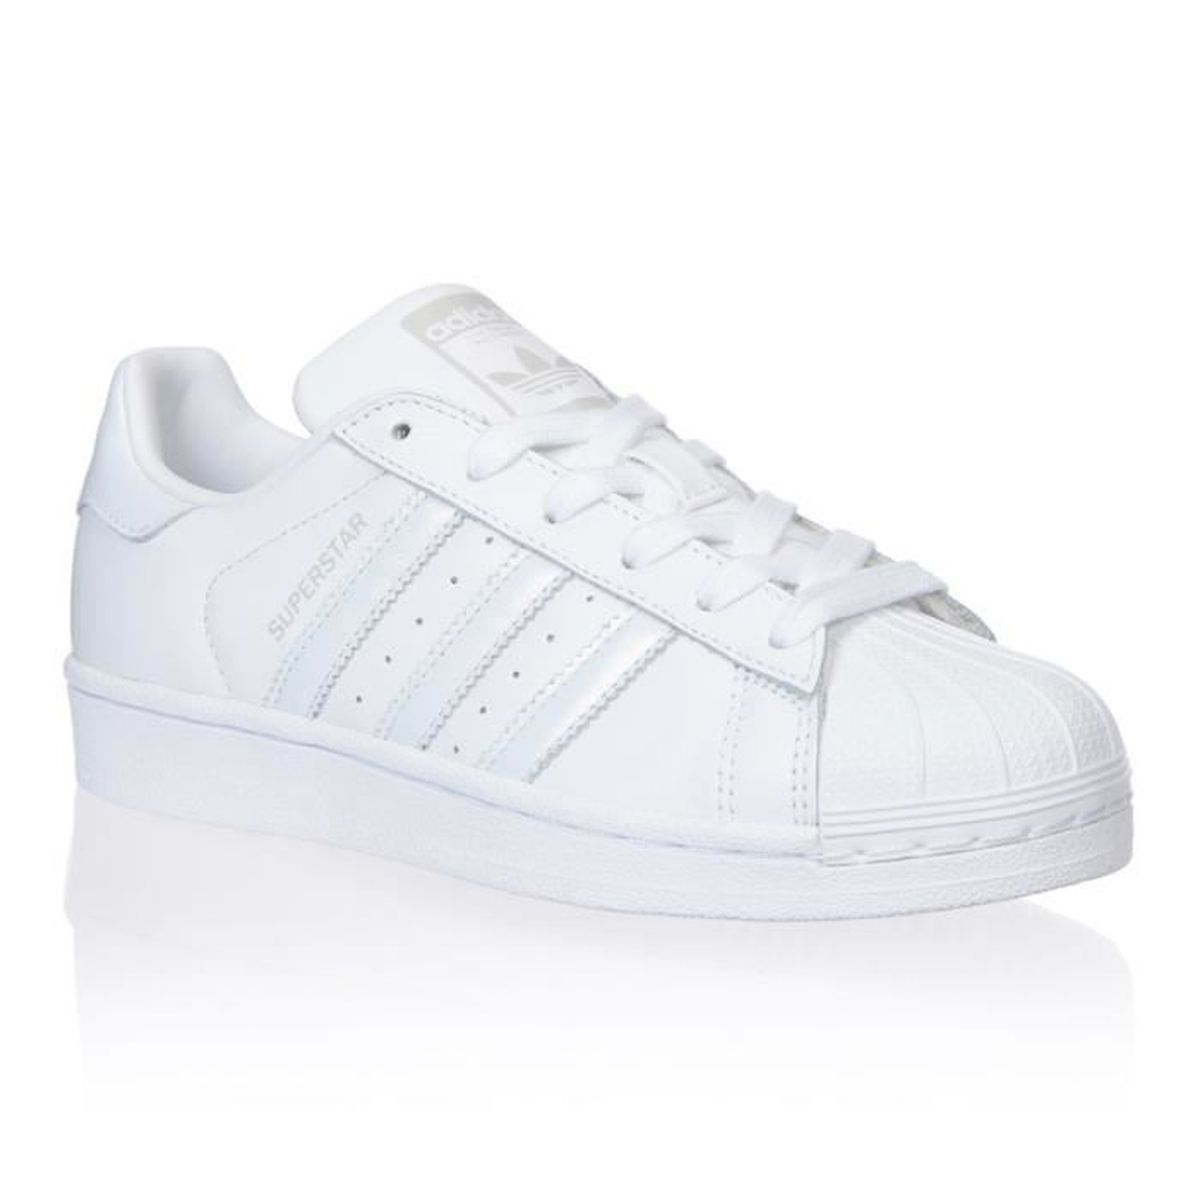 énorme réduction a0a5f 63d82 adidas superstar femme